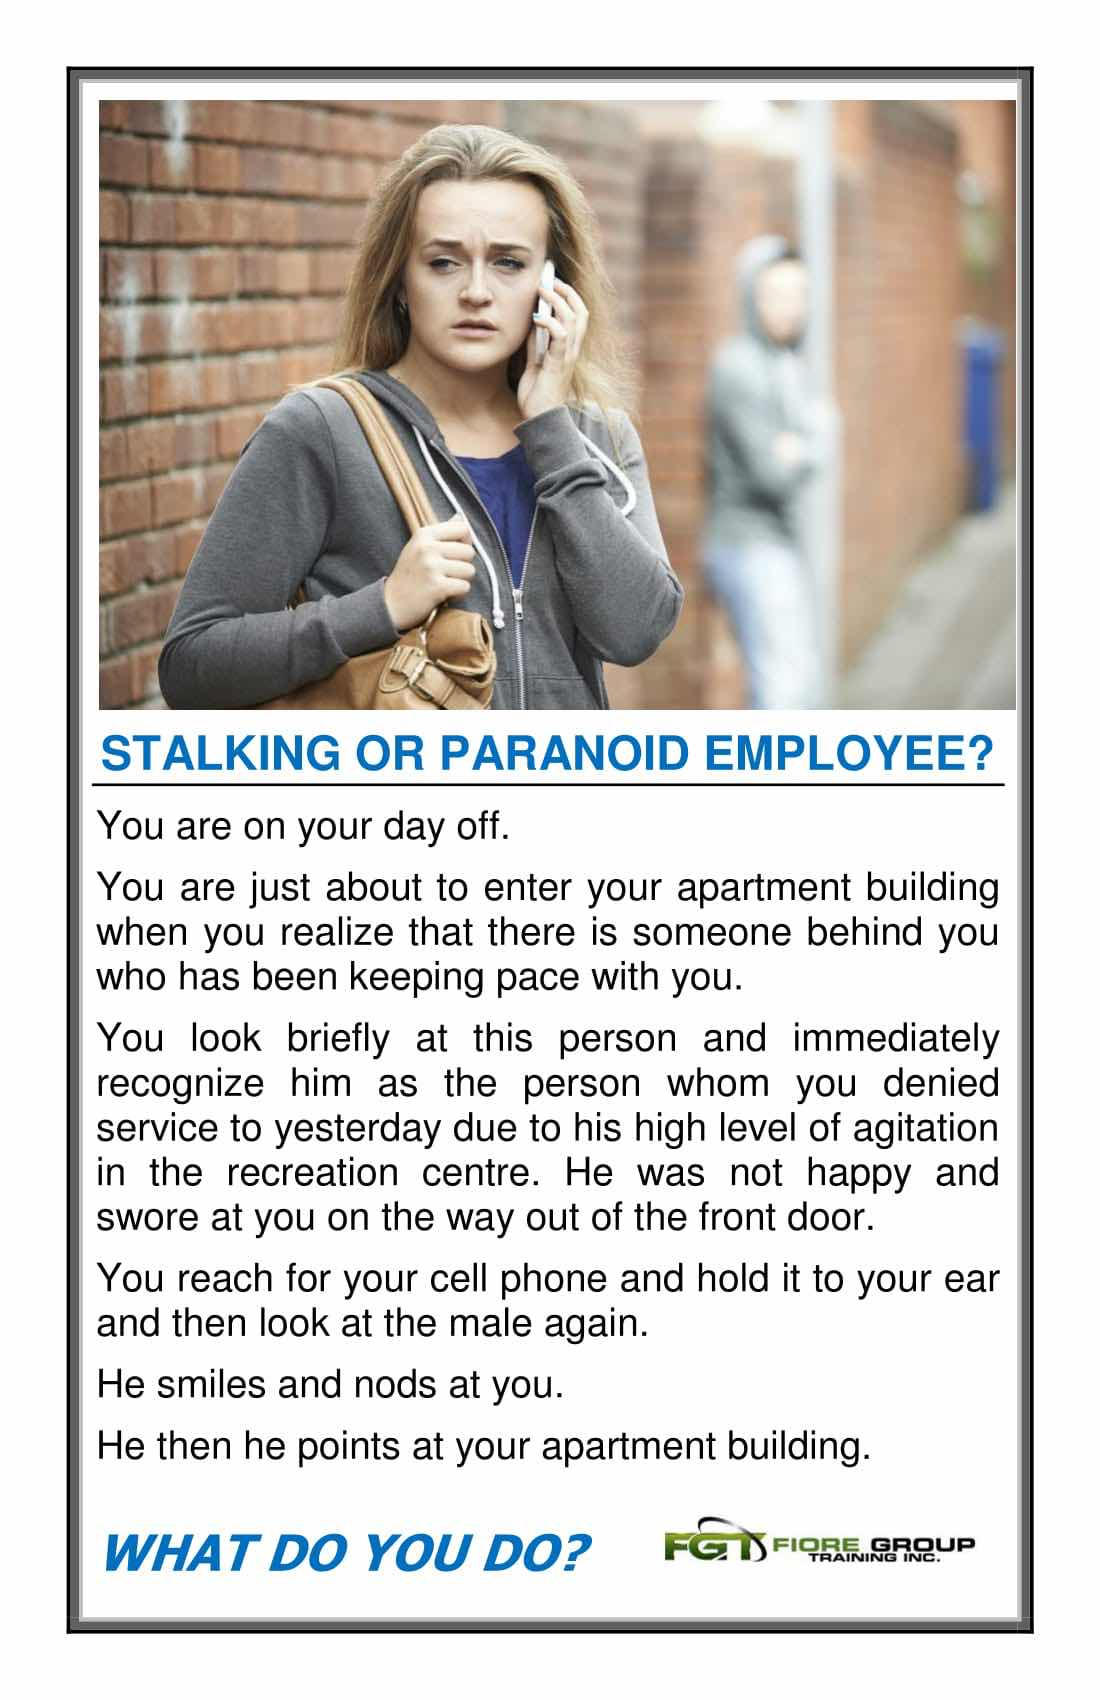 workplace-violence-prevention-2